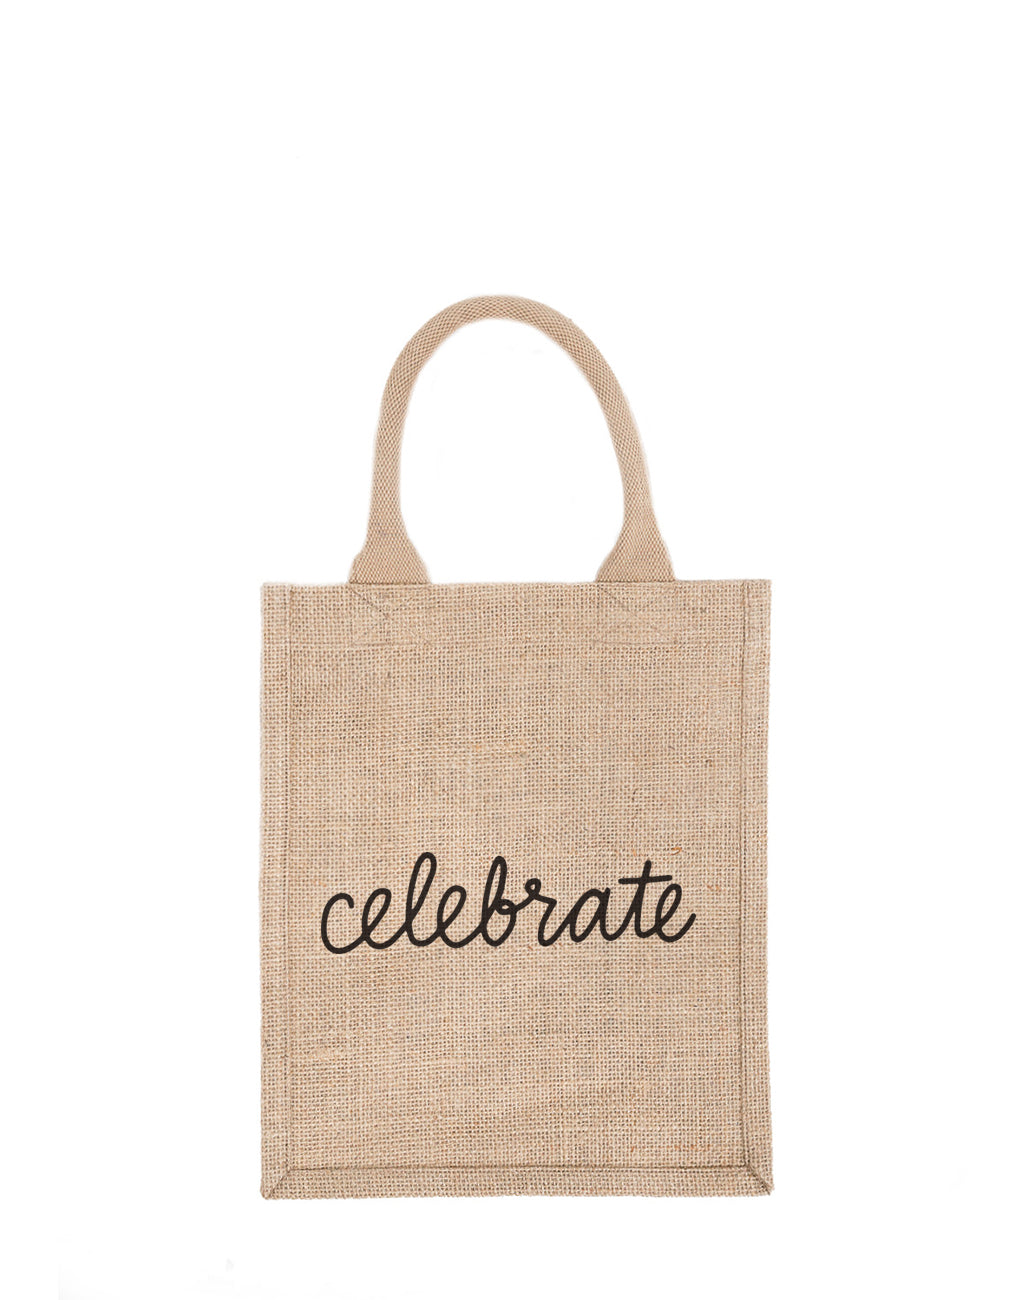 Medium Celebrate Reusable Gift Tote In Black Font | The Little Market